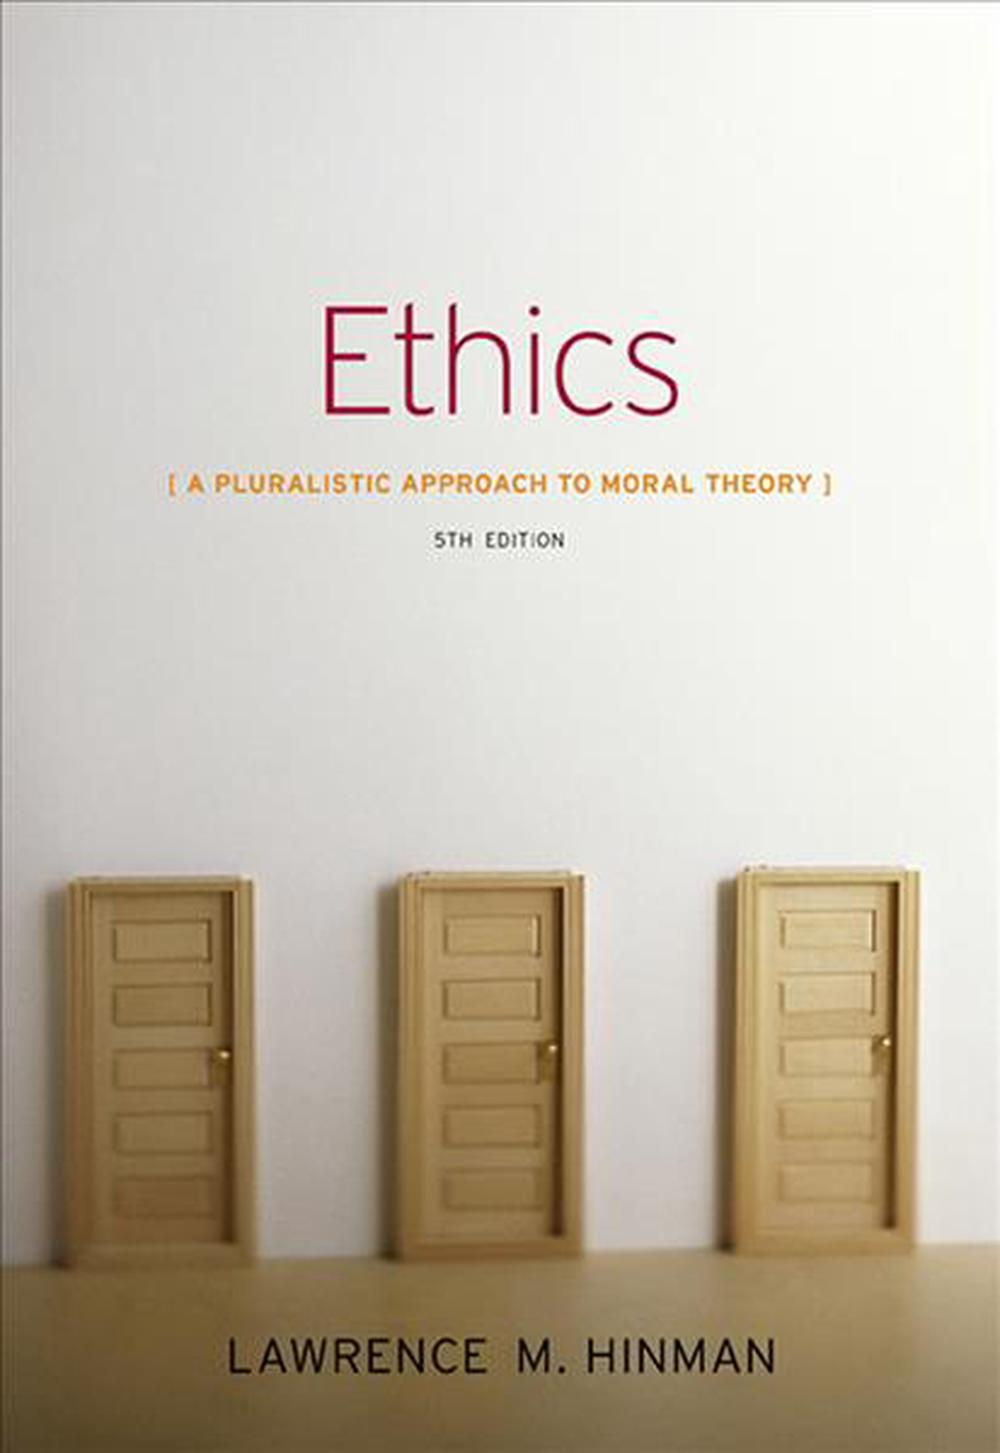 Ethics: A Pluralistic Approach to Moral Theory, 5th Edition